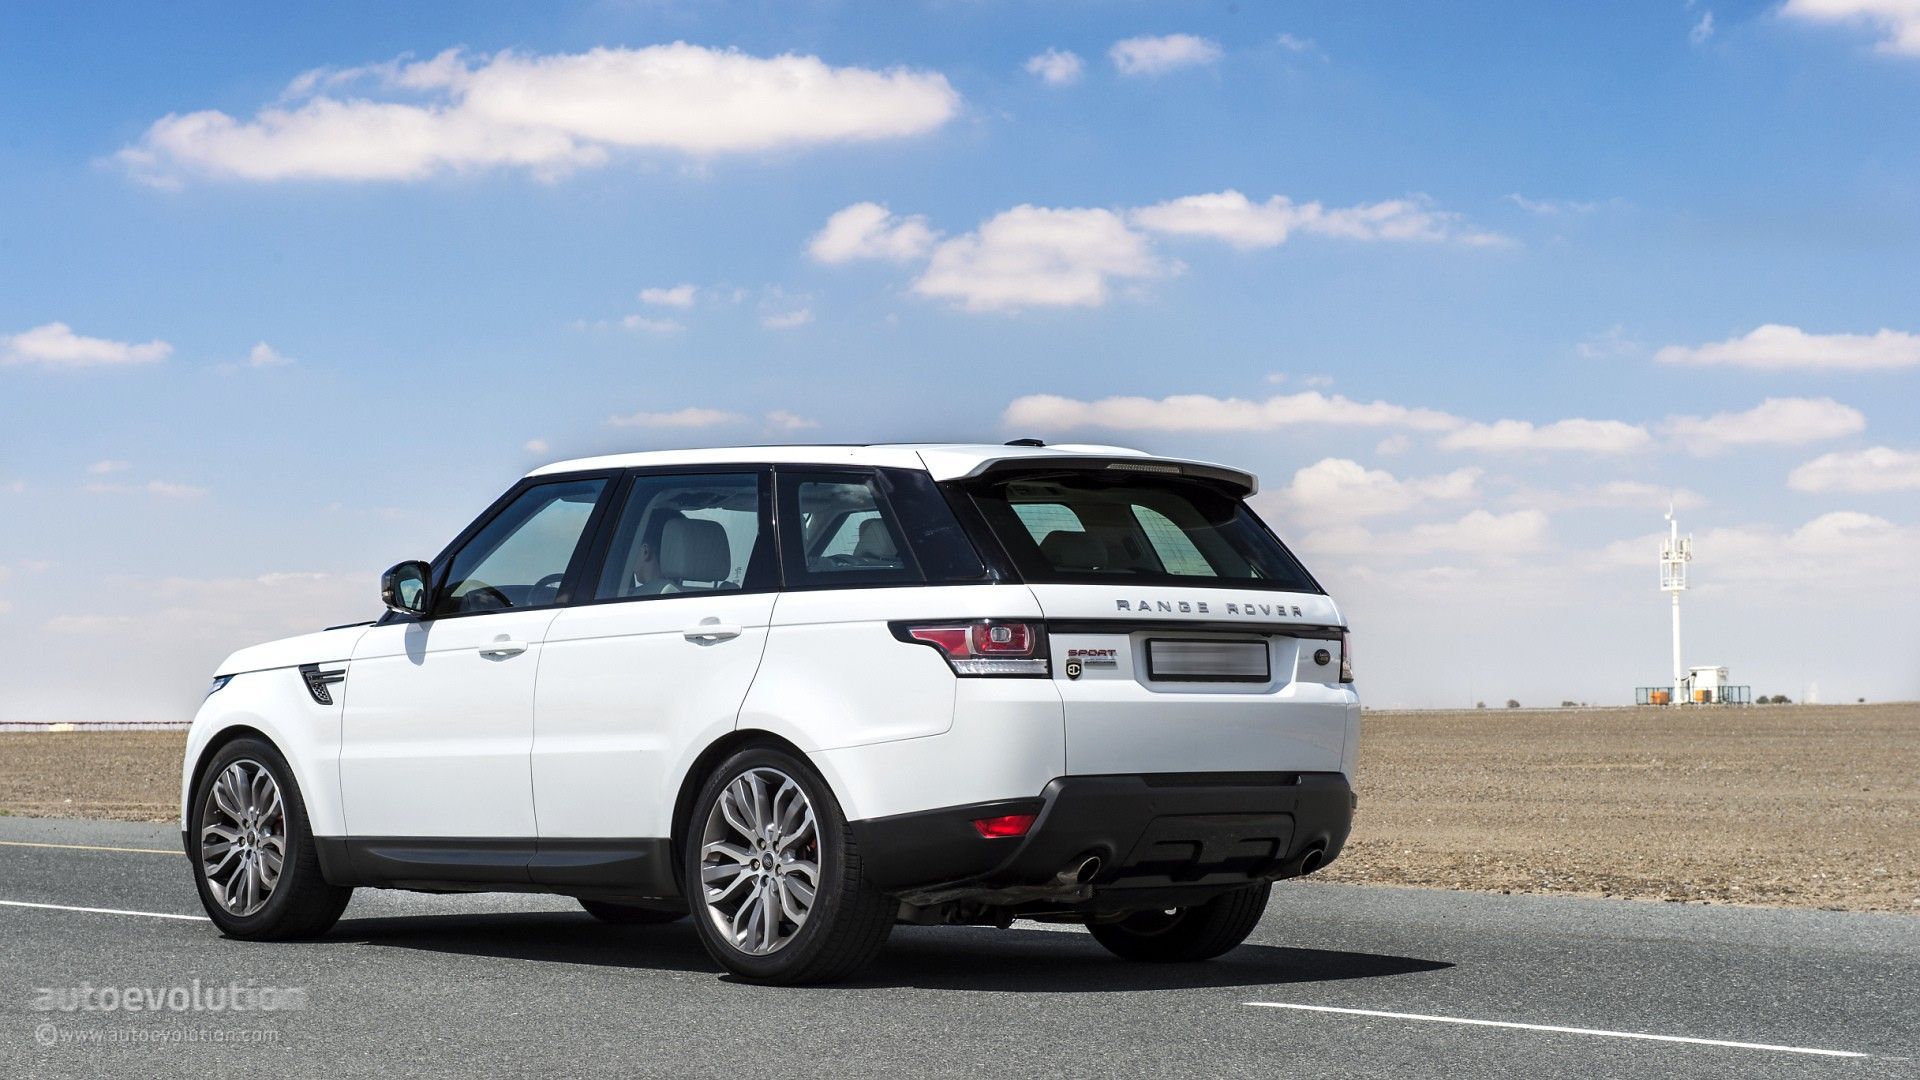 2015 Range Rover Sport Supercharged Review Range Rover Sport Range Rover Supercharged Range Rover